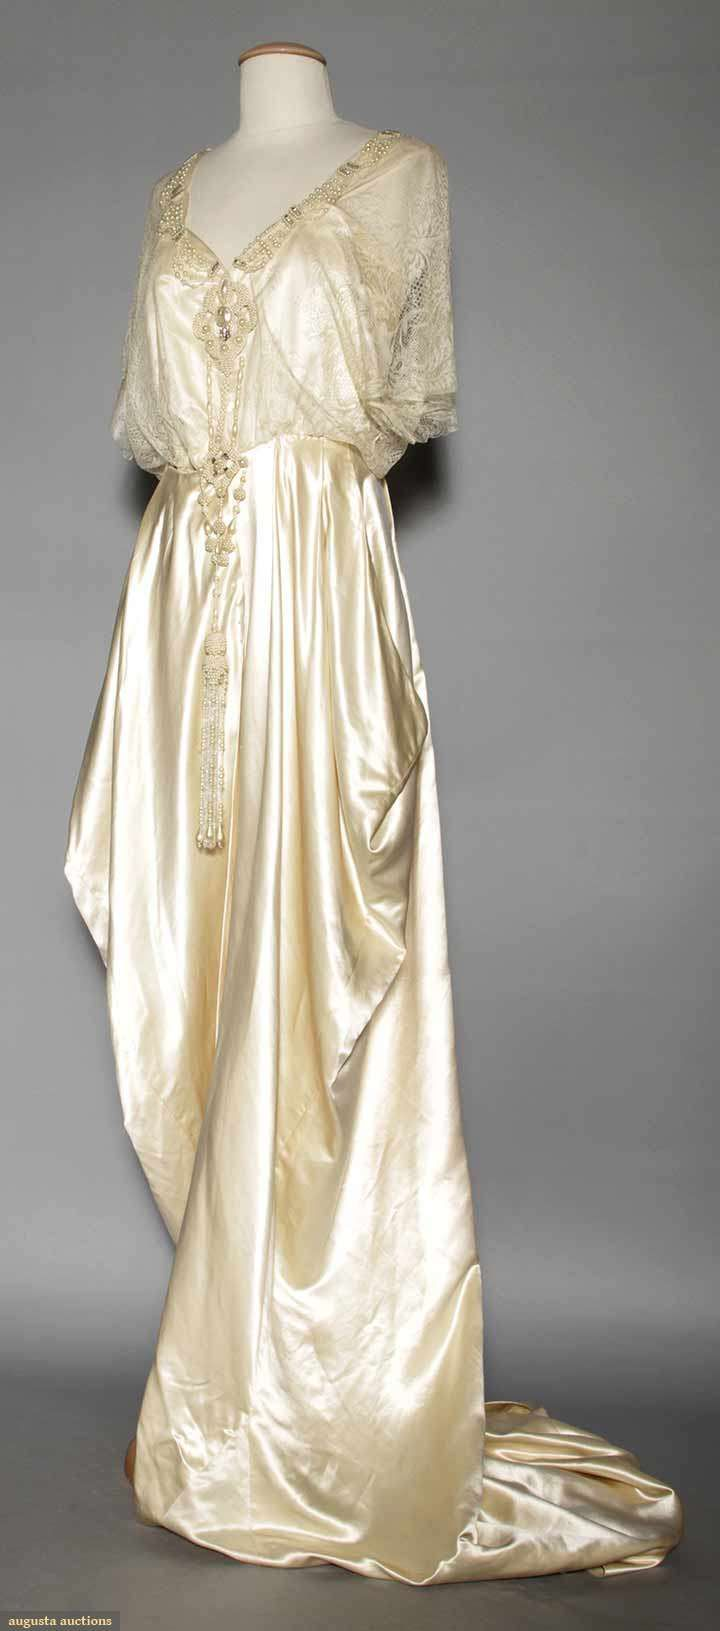 IVORY SILK SATIN WEDDING GOWN 1912 Silk charmeuse trained